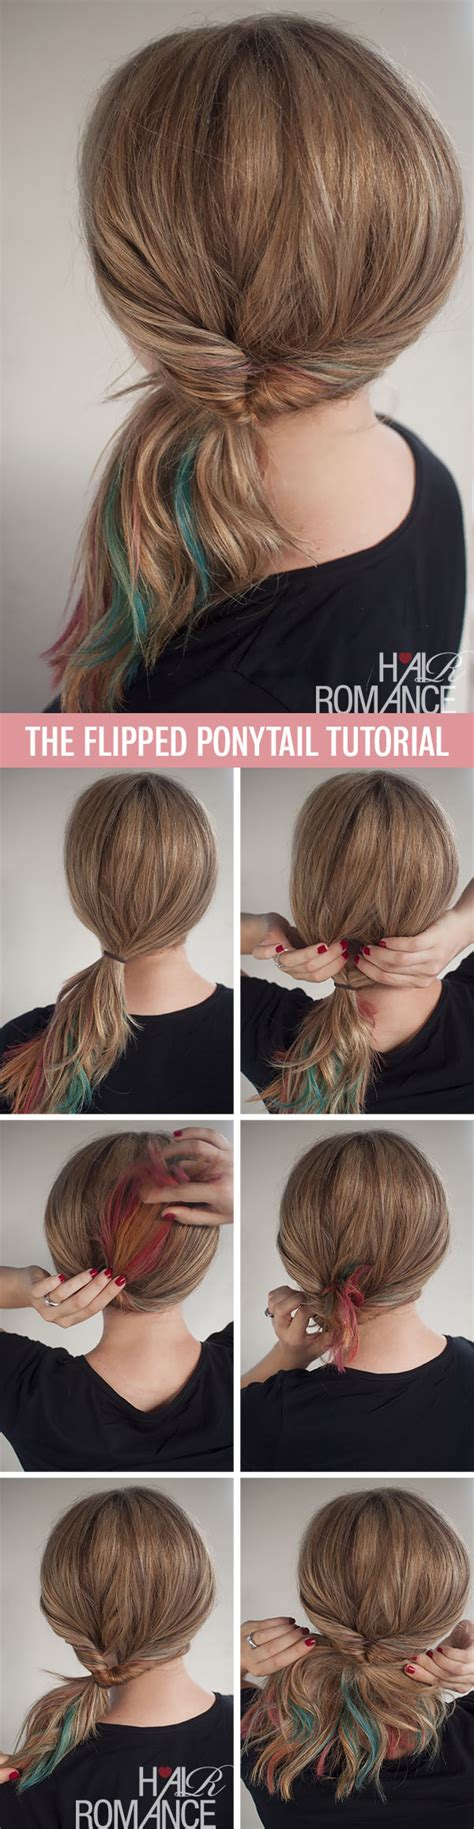 cute hairstyle steps get cute hair in less than 1 minute the flipped ponytail